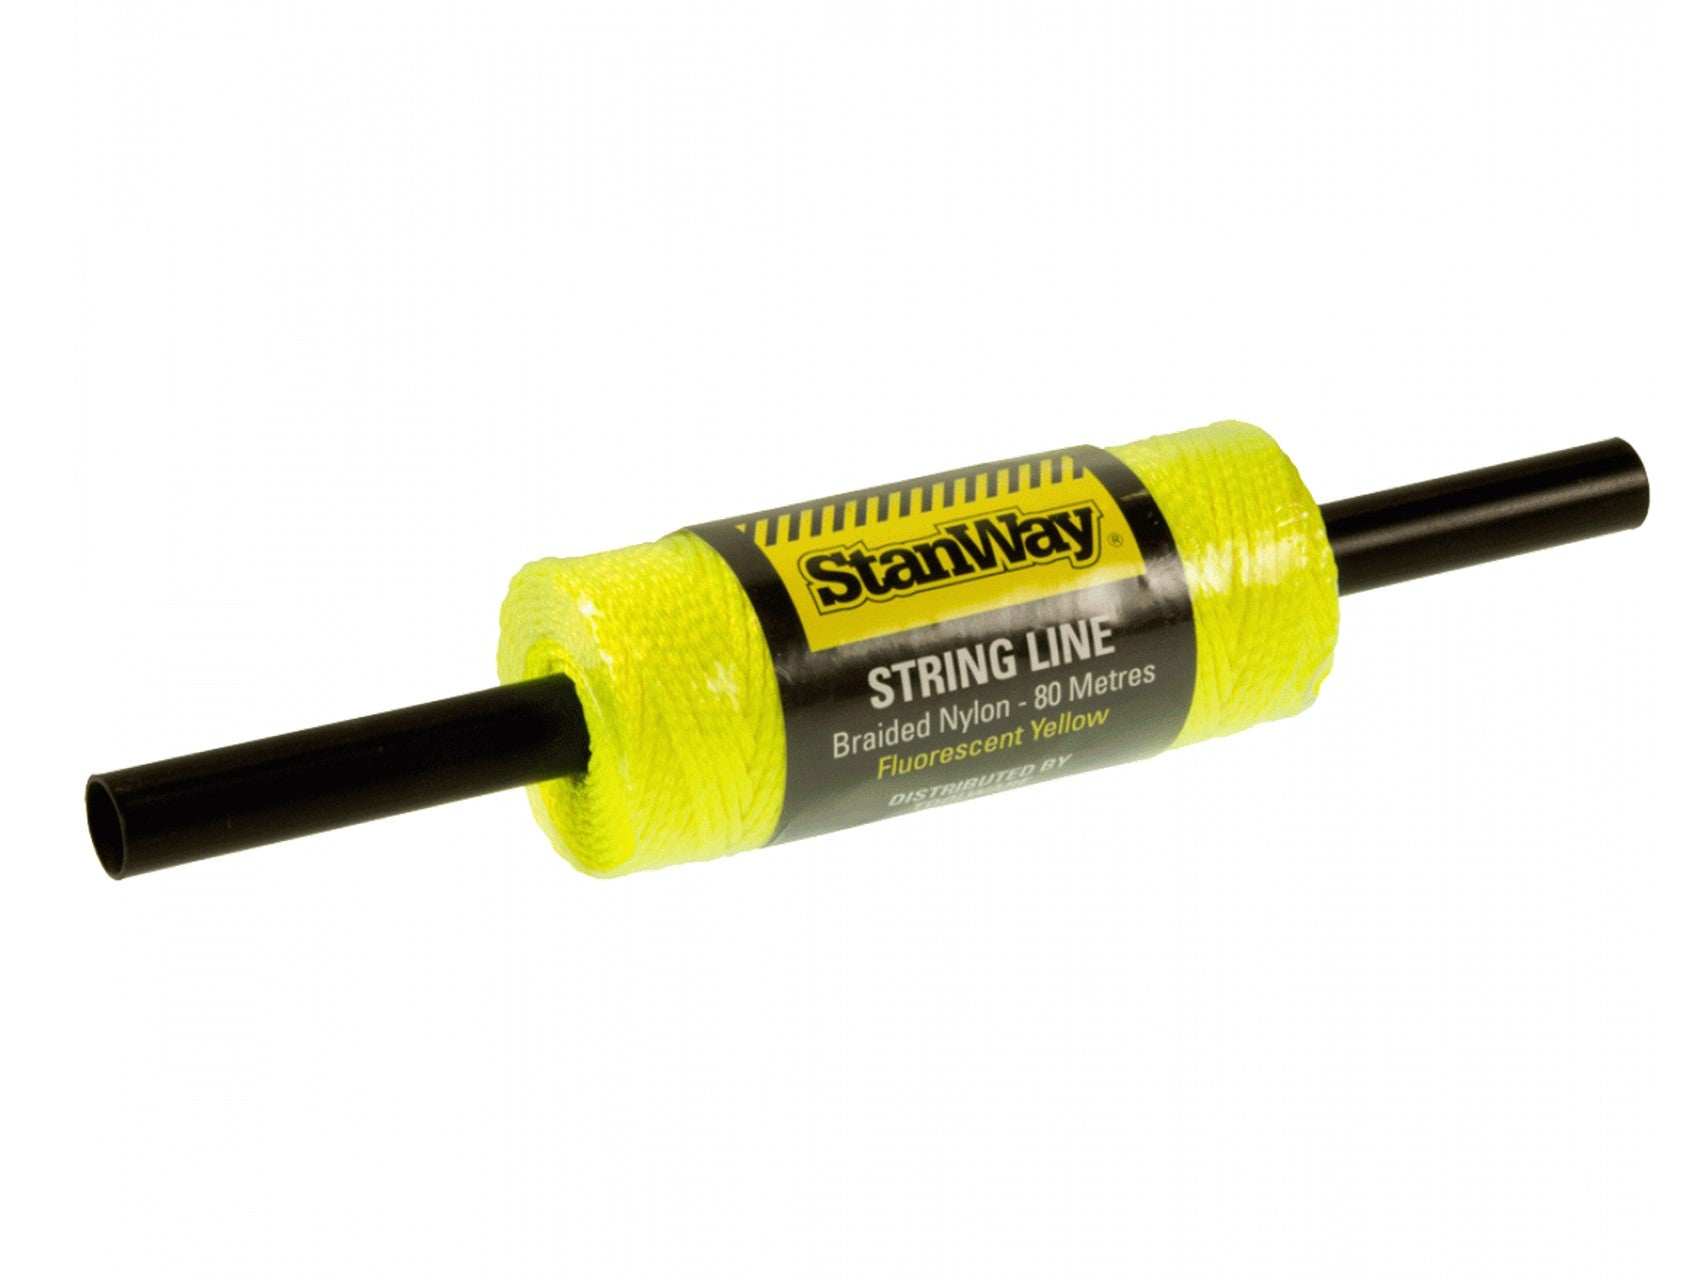 Stanway Braided String Line